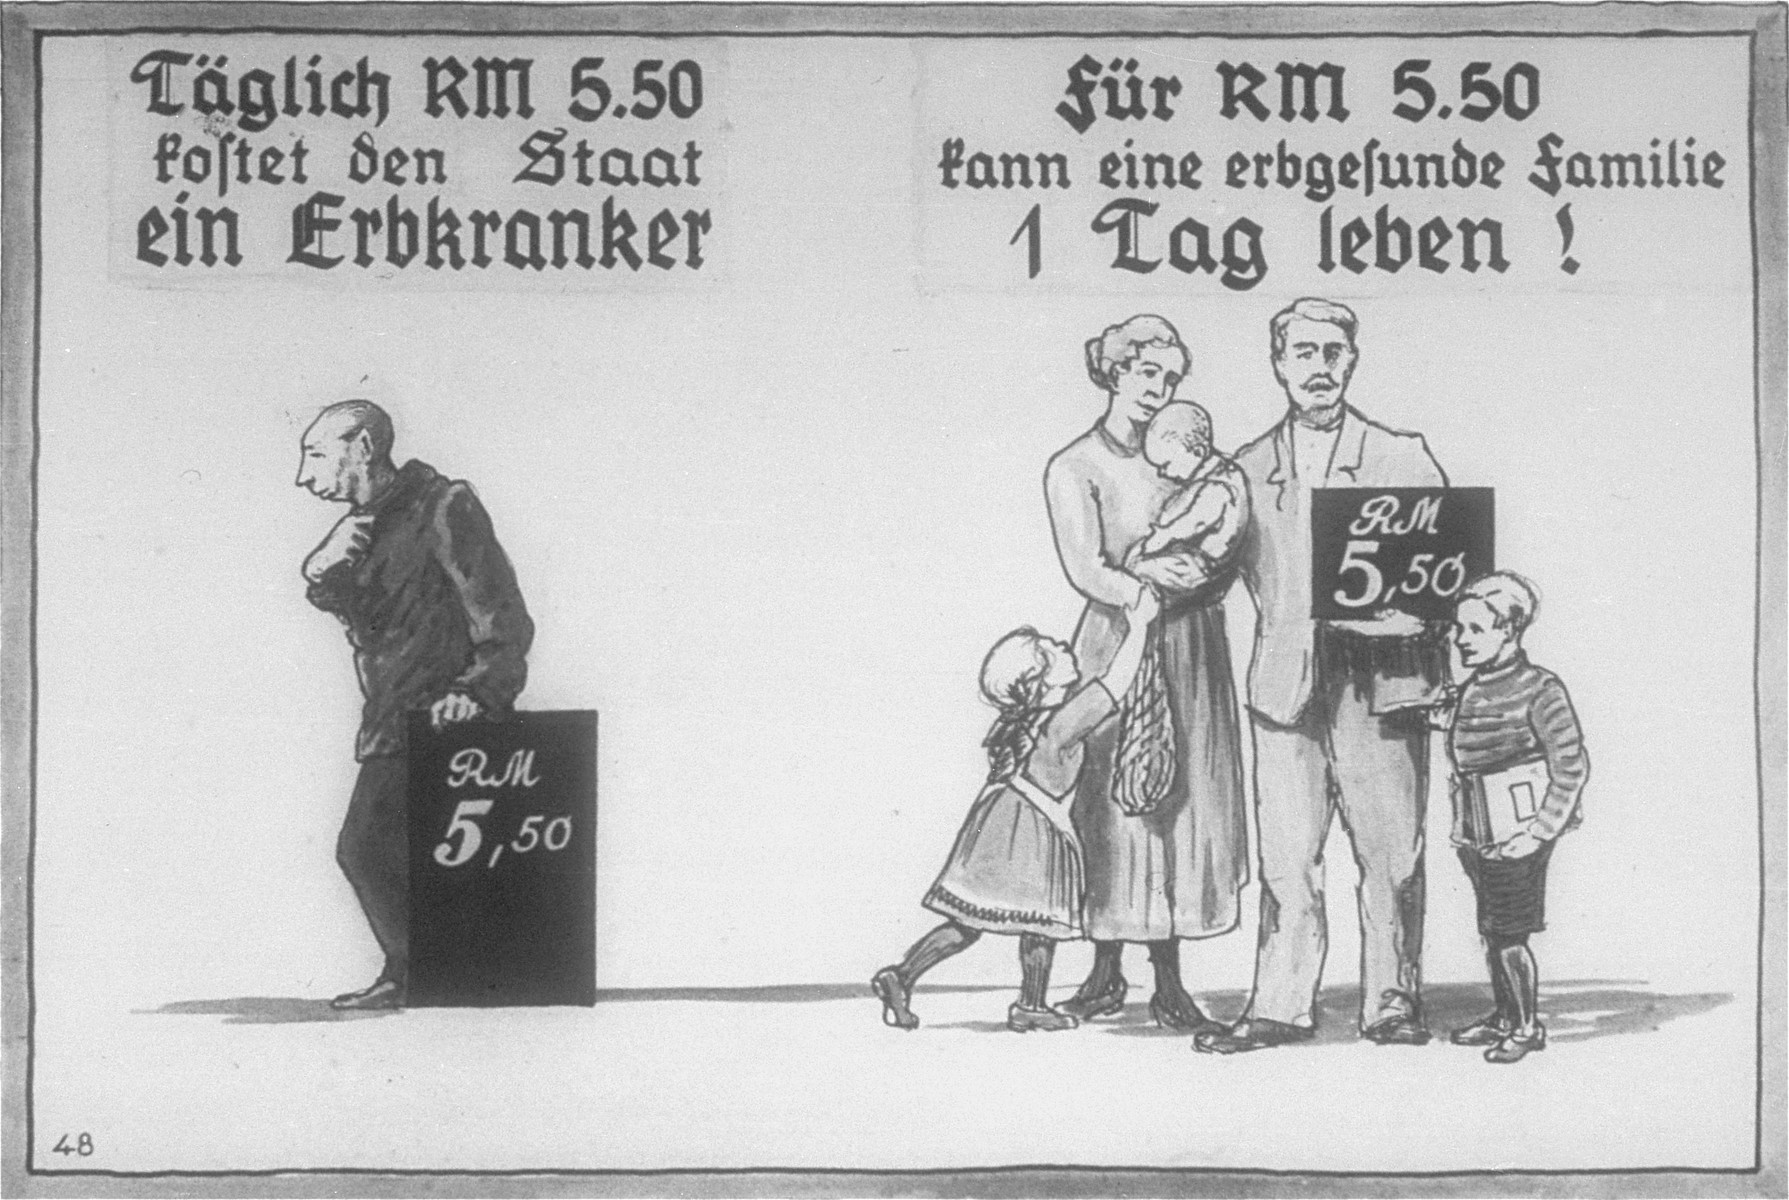 Propaganda slide produced by the Reich Propaganda Office showing the opportunity cost of feeding a person with a hereditary disease.  The illustration shows that an entire family of healthy Germans can live for one day on the same 5.50 Reichsmarks it costs to support one ill person for the same amount of time.